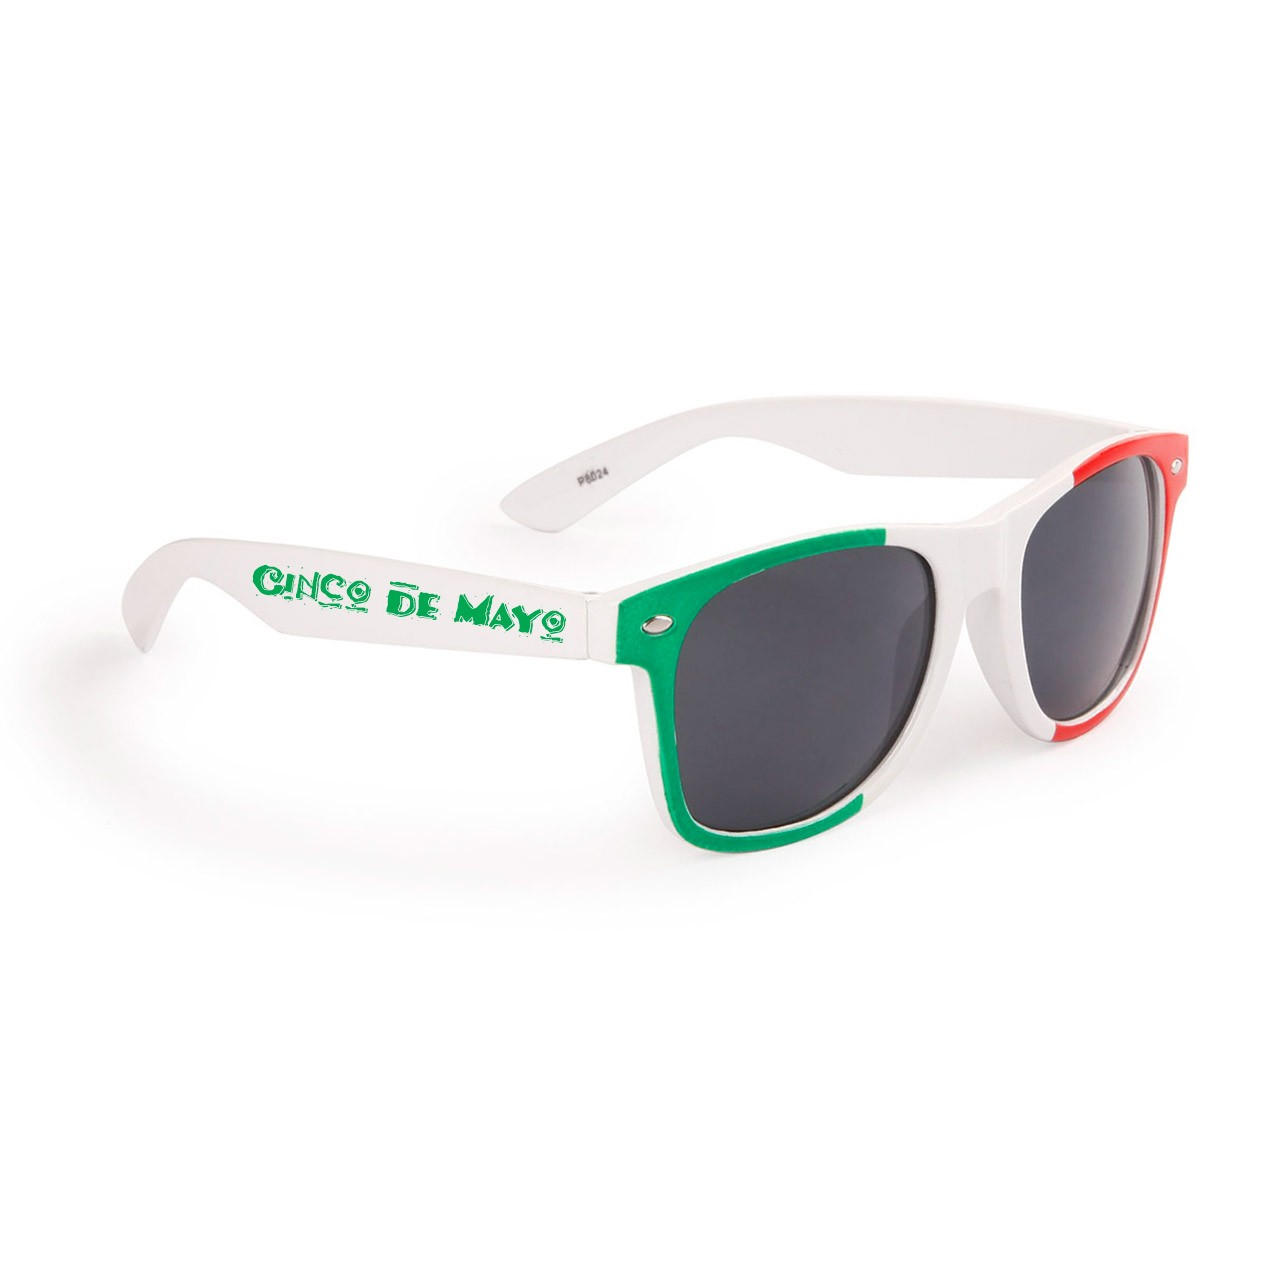 Printed Mexico Flag Sunglasses